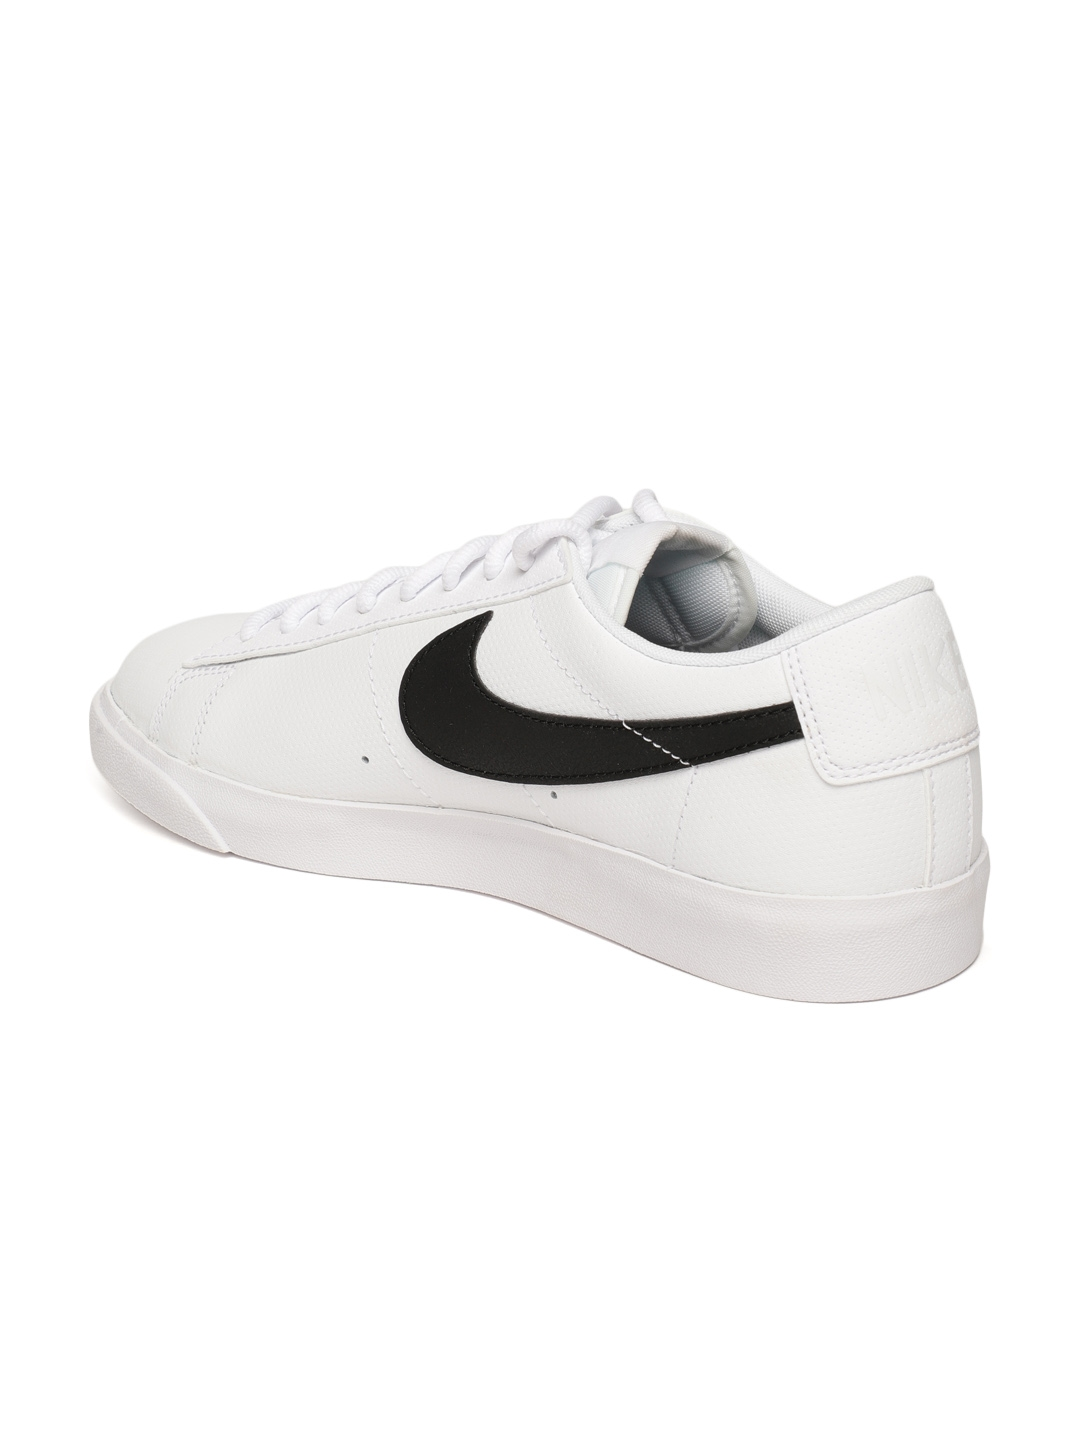 new arrival 916f3 e8db7 Nike Men White Blazer Low Leather Casual Shoes